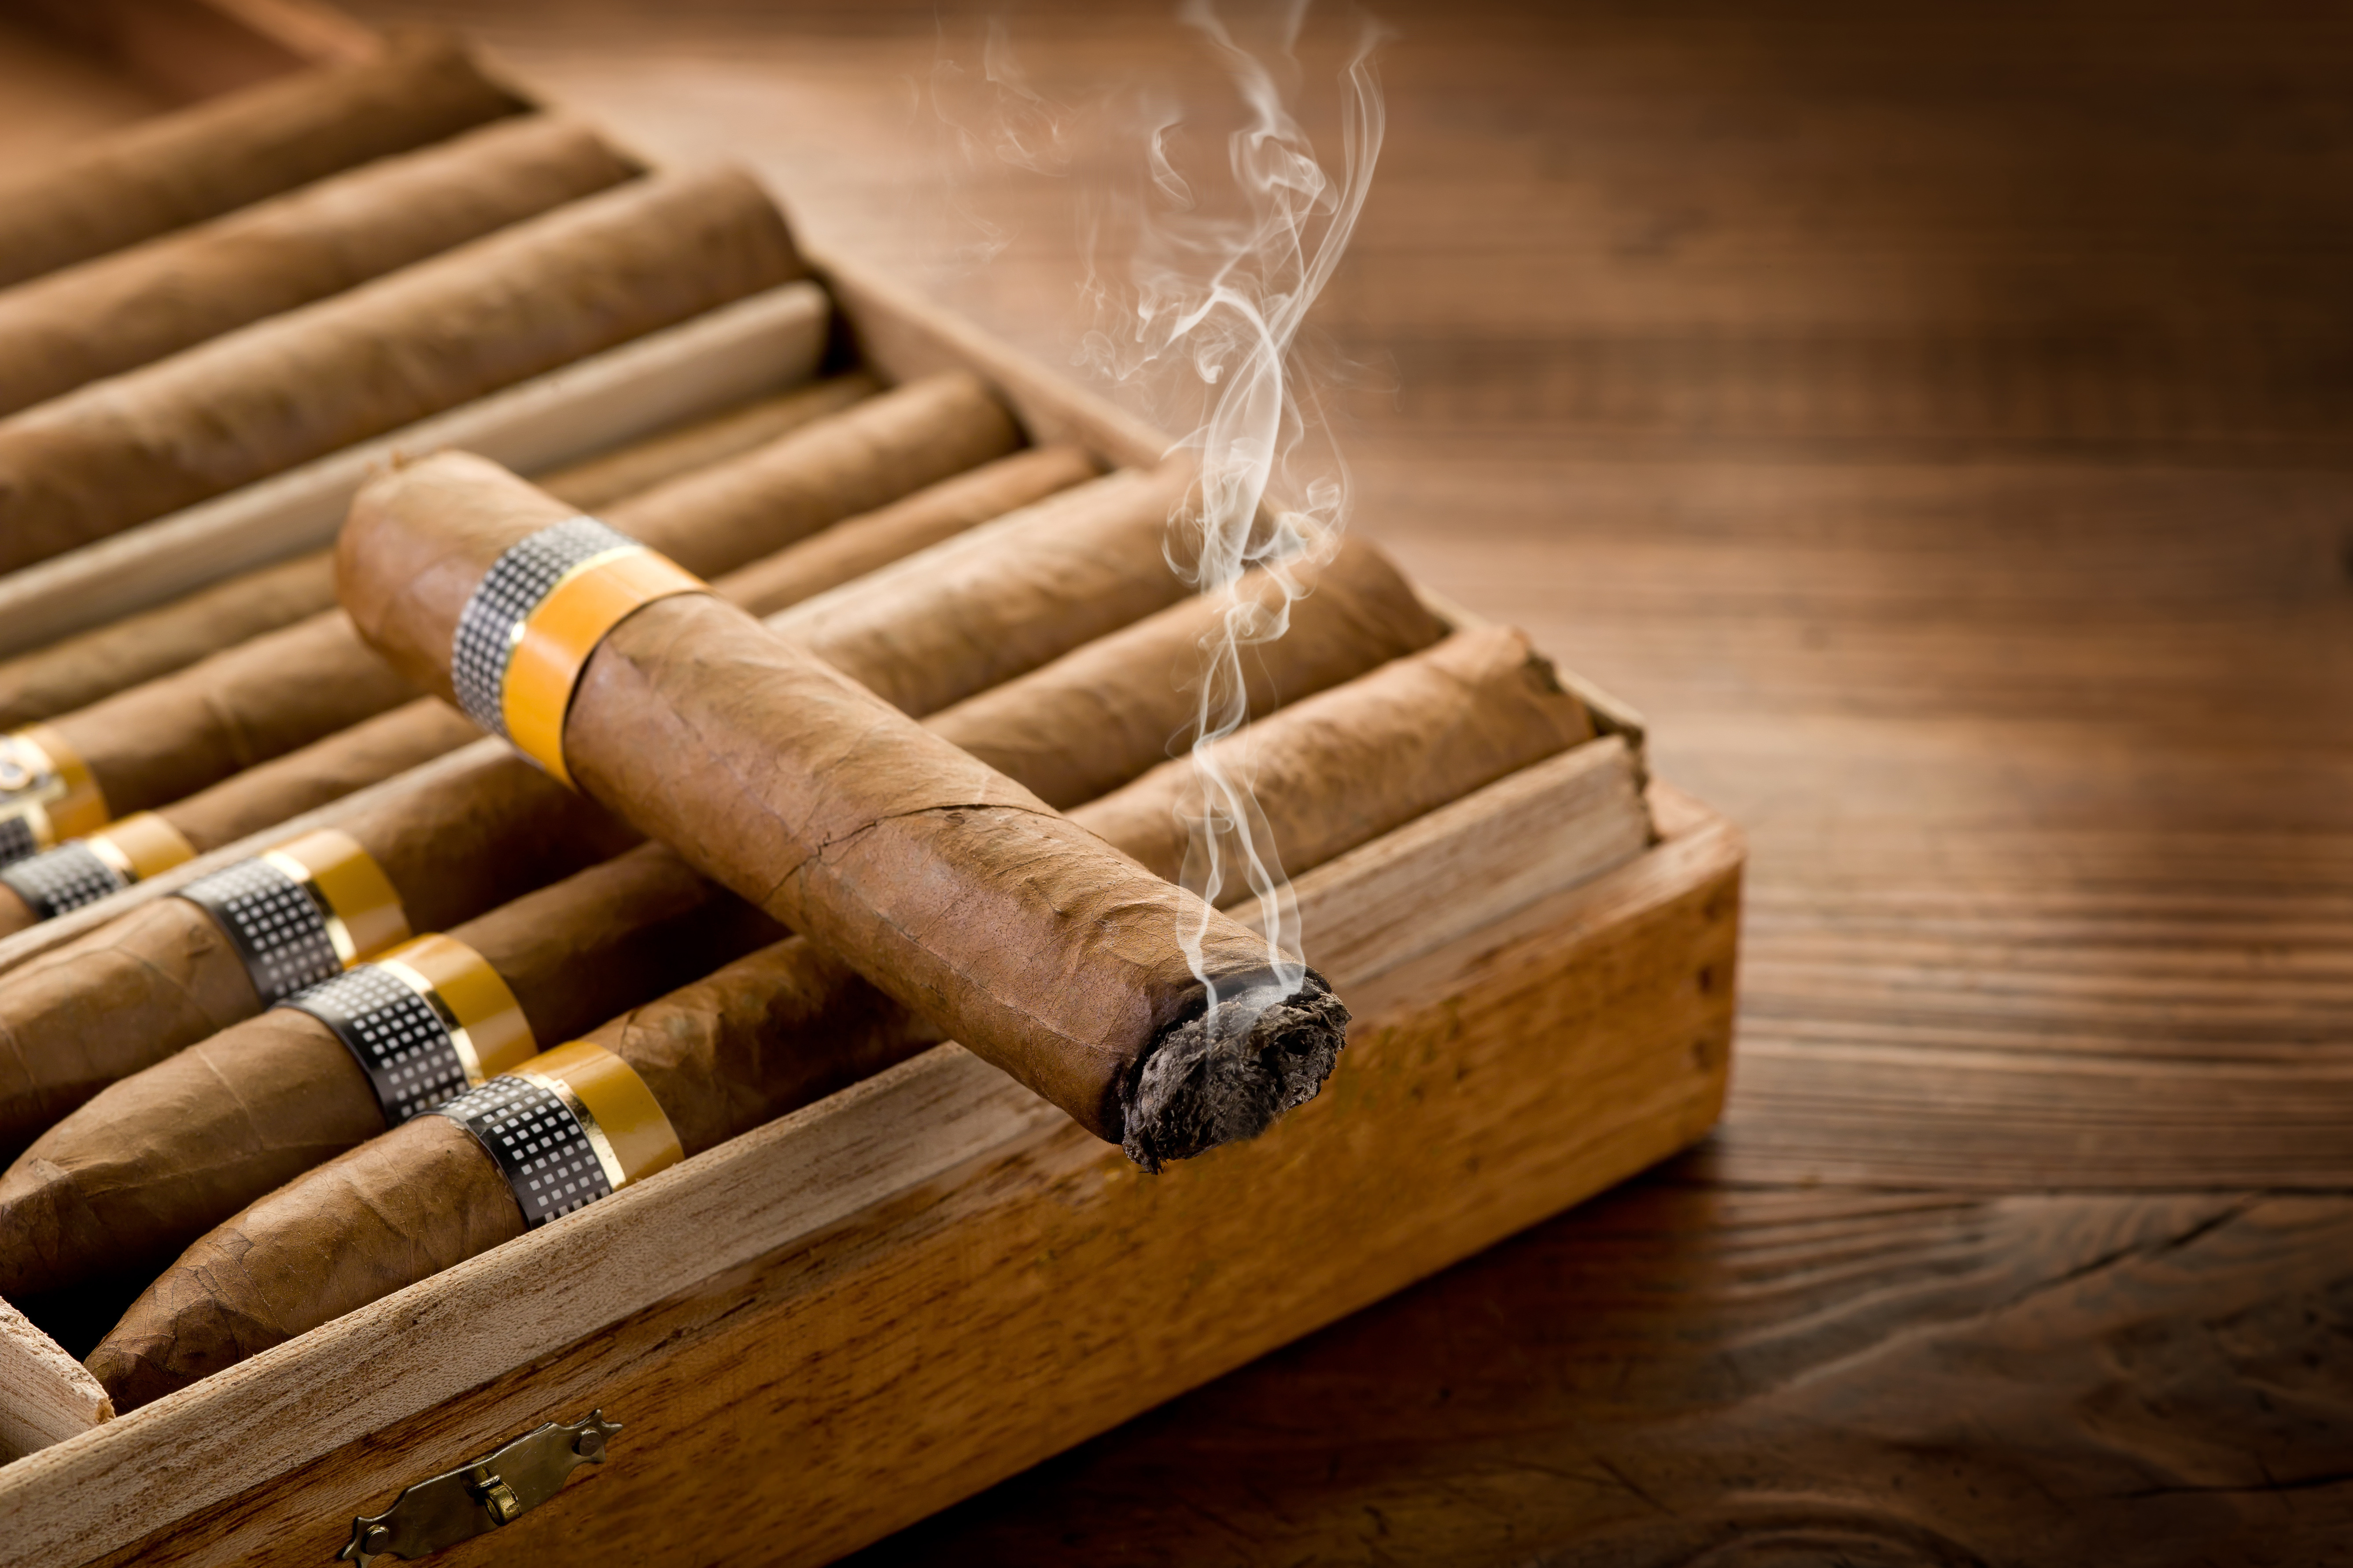 13 cigar hd wallpapers | background images - wallpaper abyss